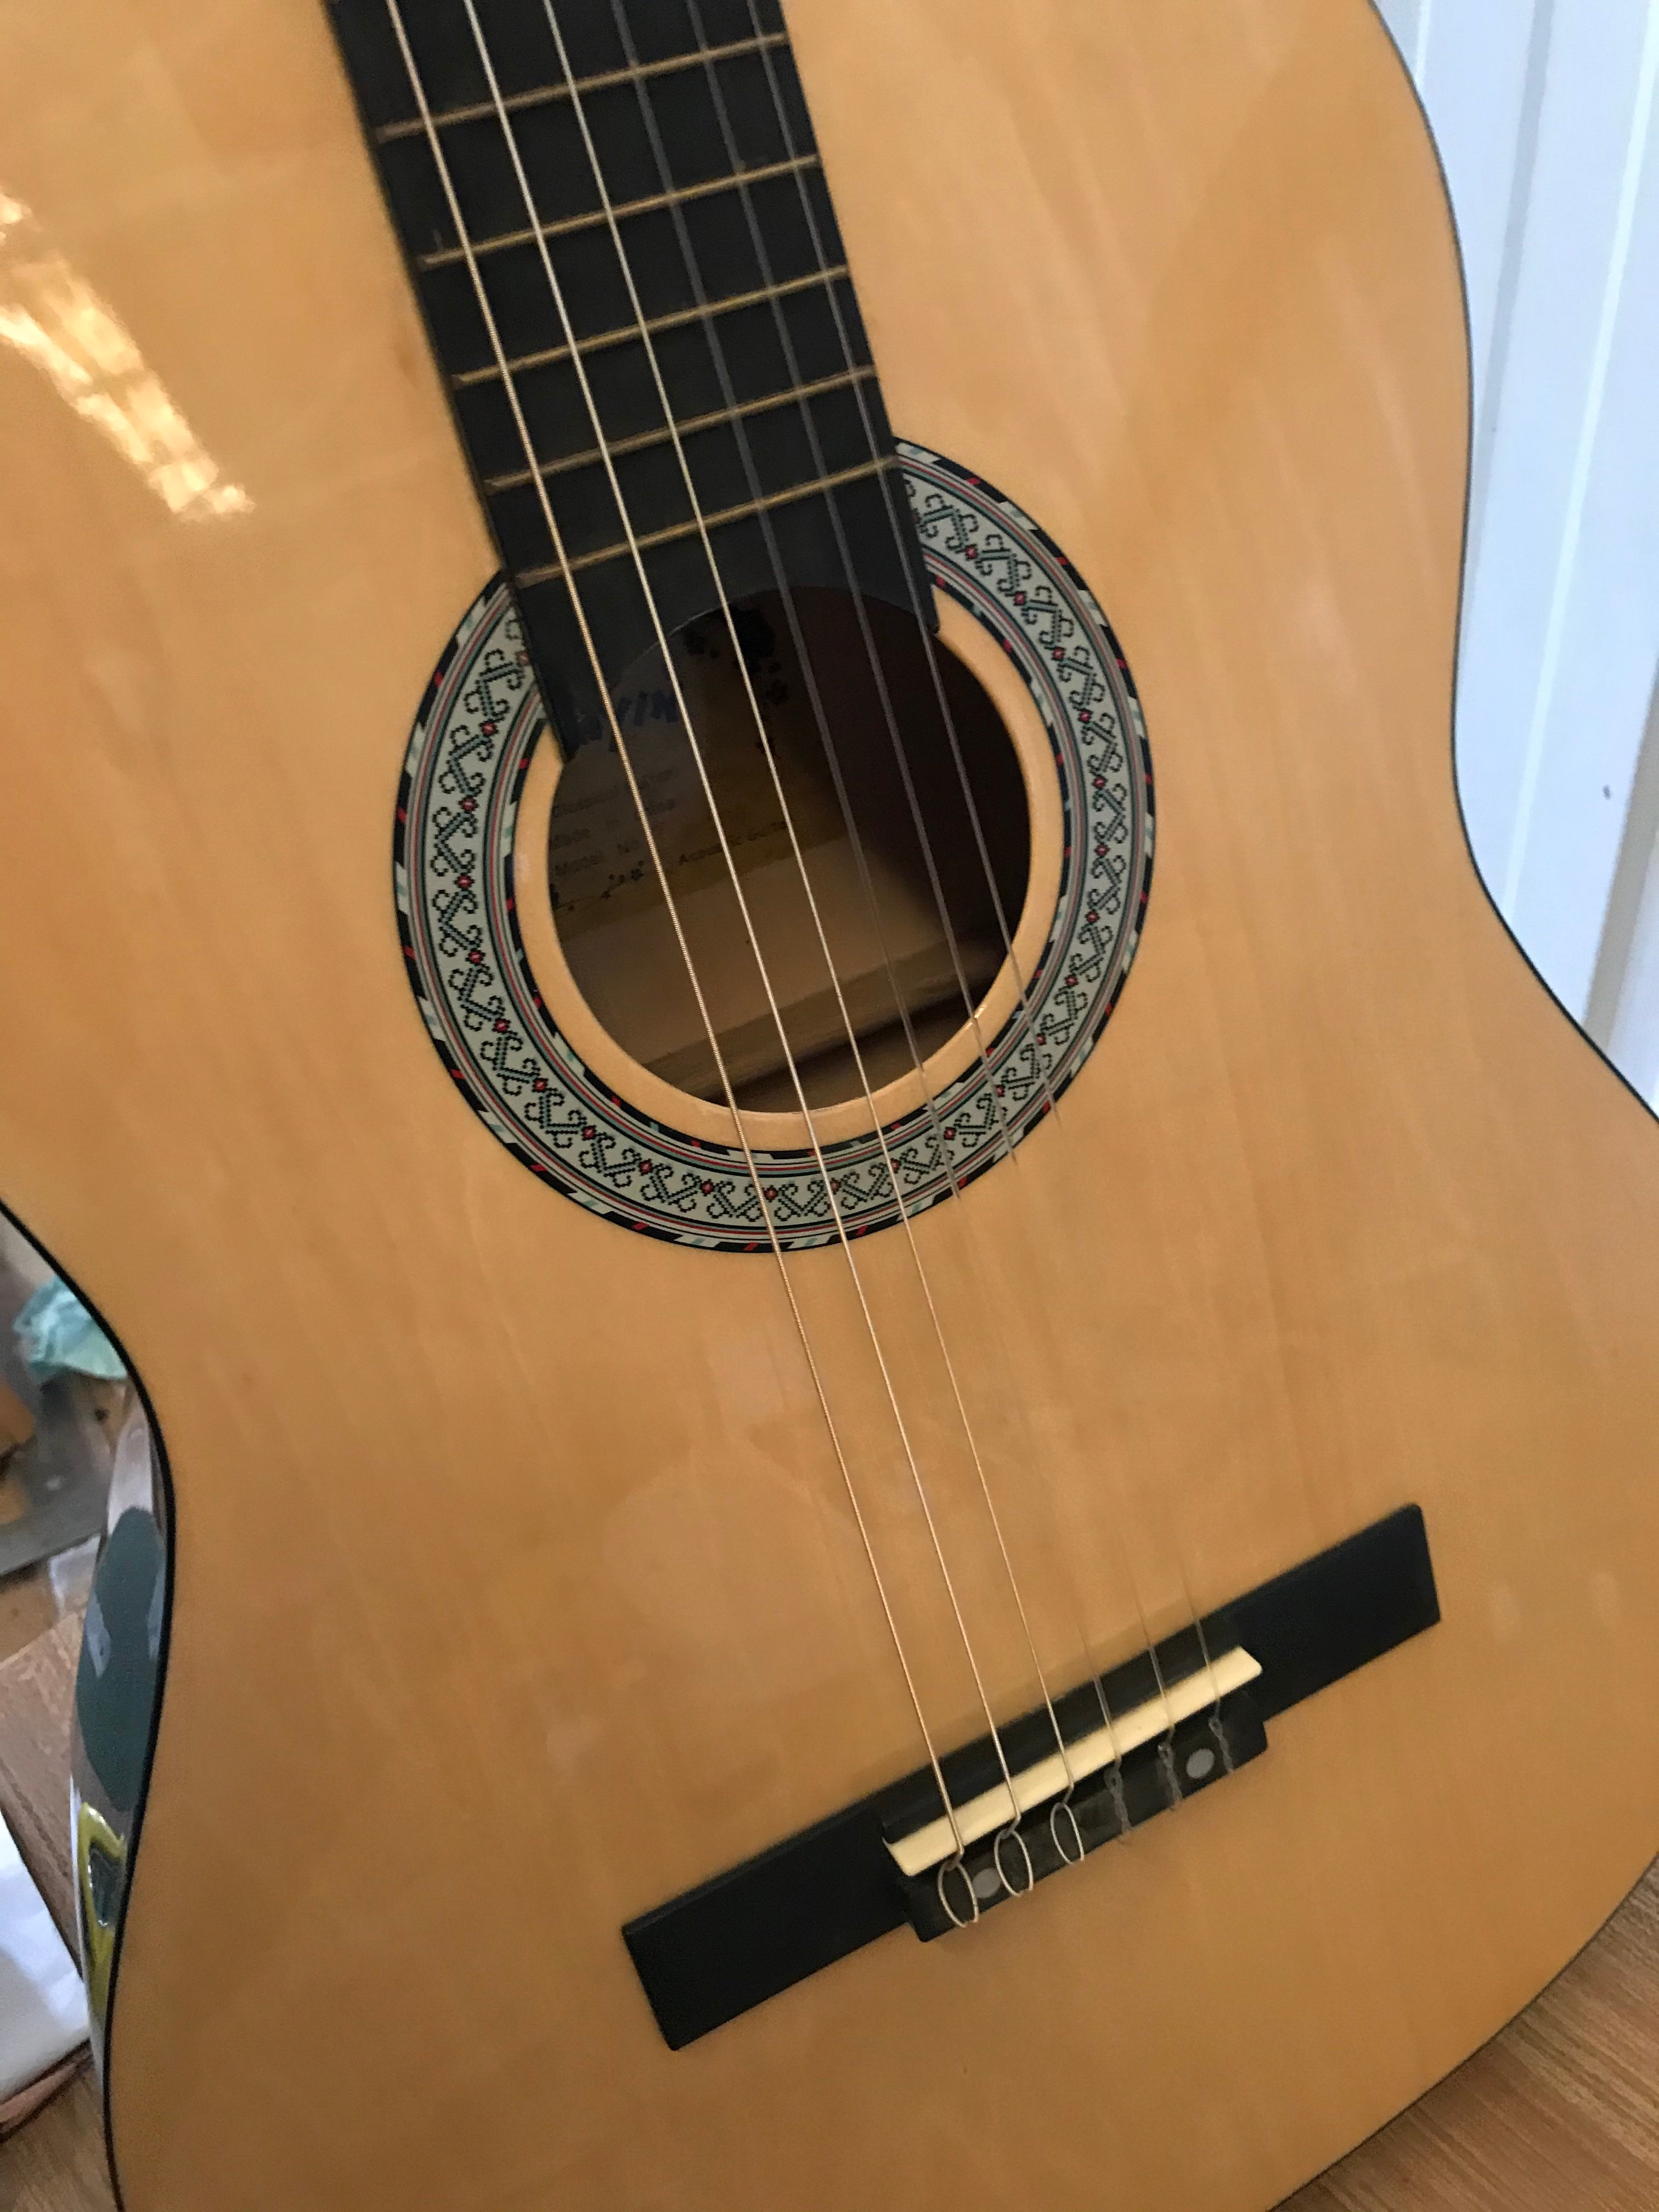 39 Inch 21 Fret Basswood Thin Body Acoustic Guitar 6 Strings Solid Wood Guitar Folk Guitar with Guitar Pickup enlarge